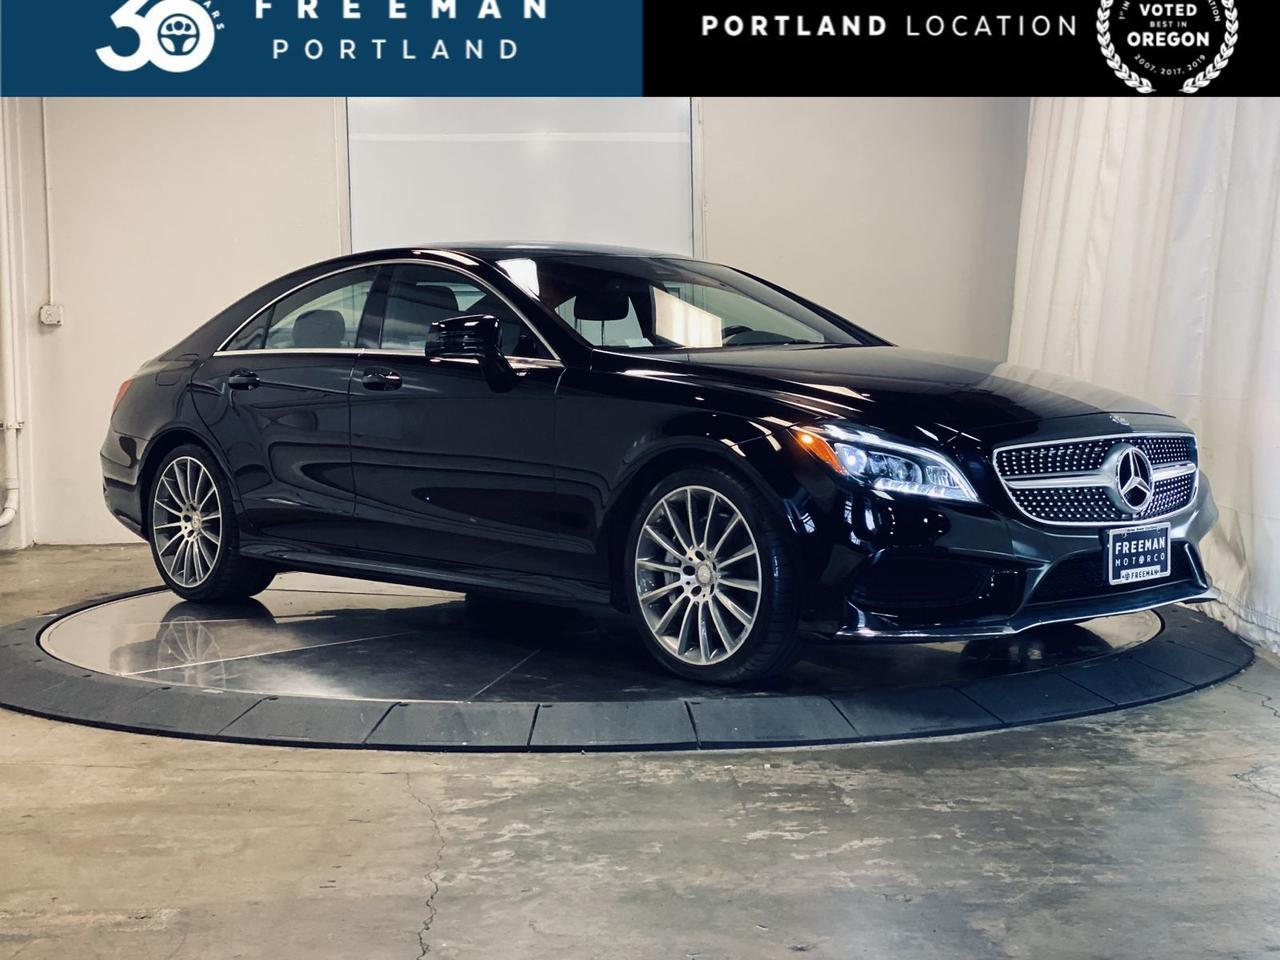 2017 Mercedes-Benz CLS 550 4MATIC AMG Sport Ventilated Seats Illuminated Star Portland OR